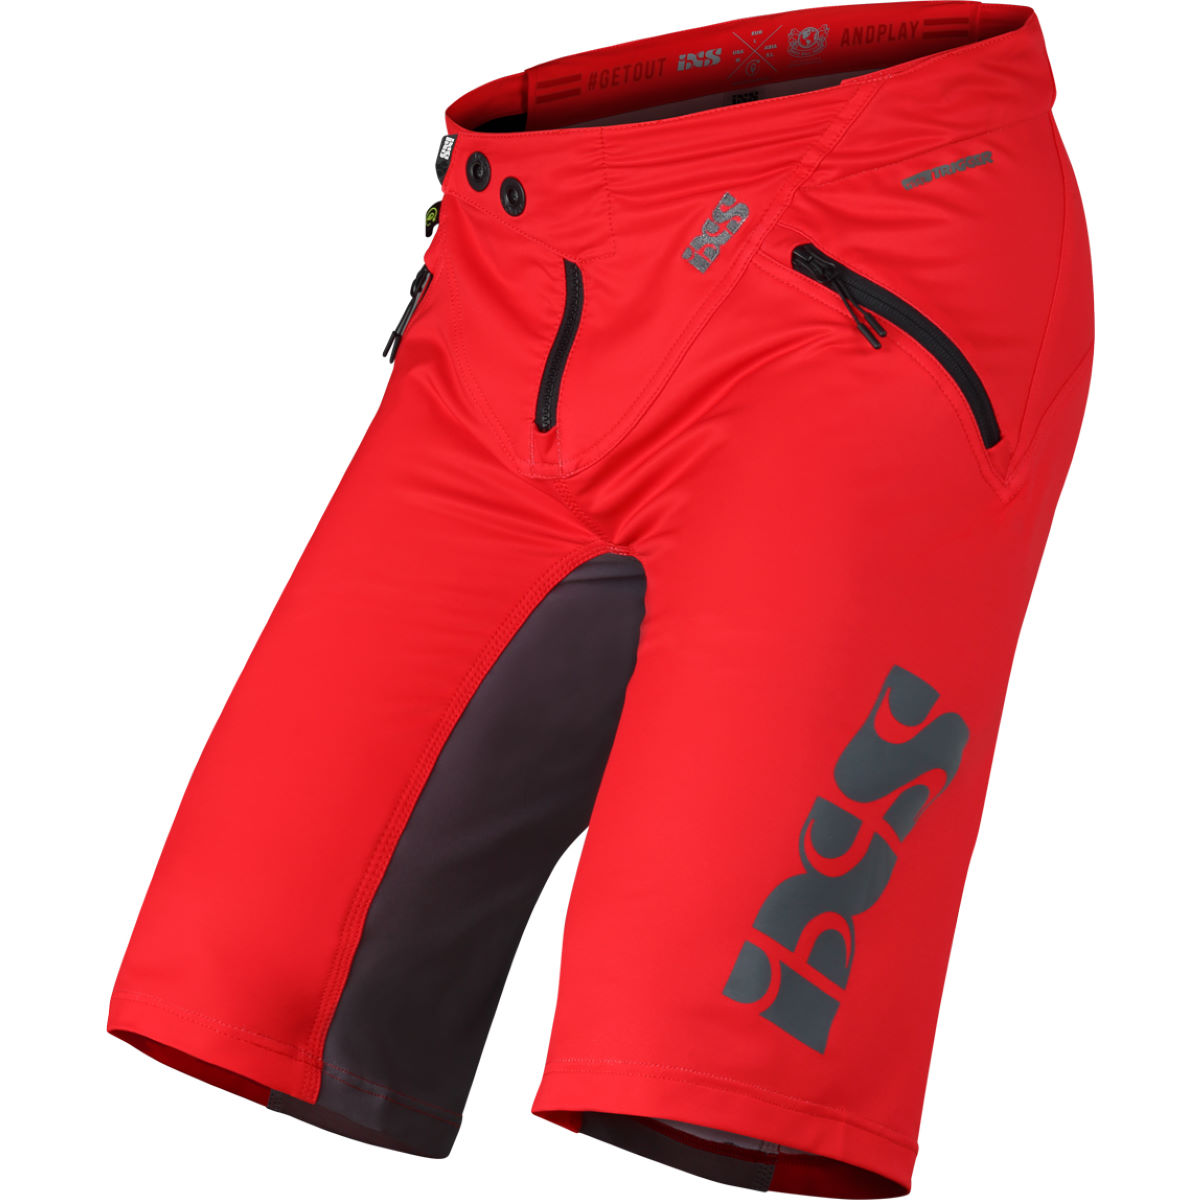 Ixs Trigger Shorts - Xl Red-graphite  Baggy Shorts